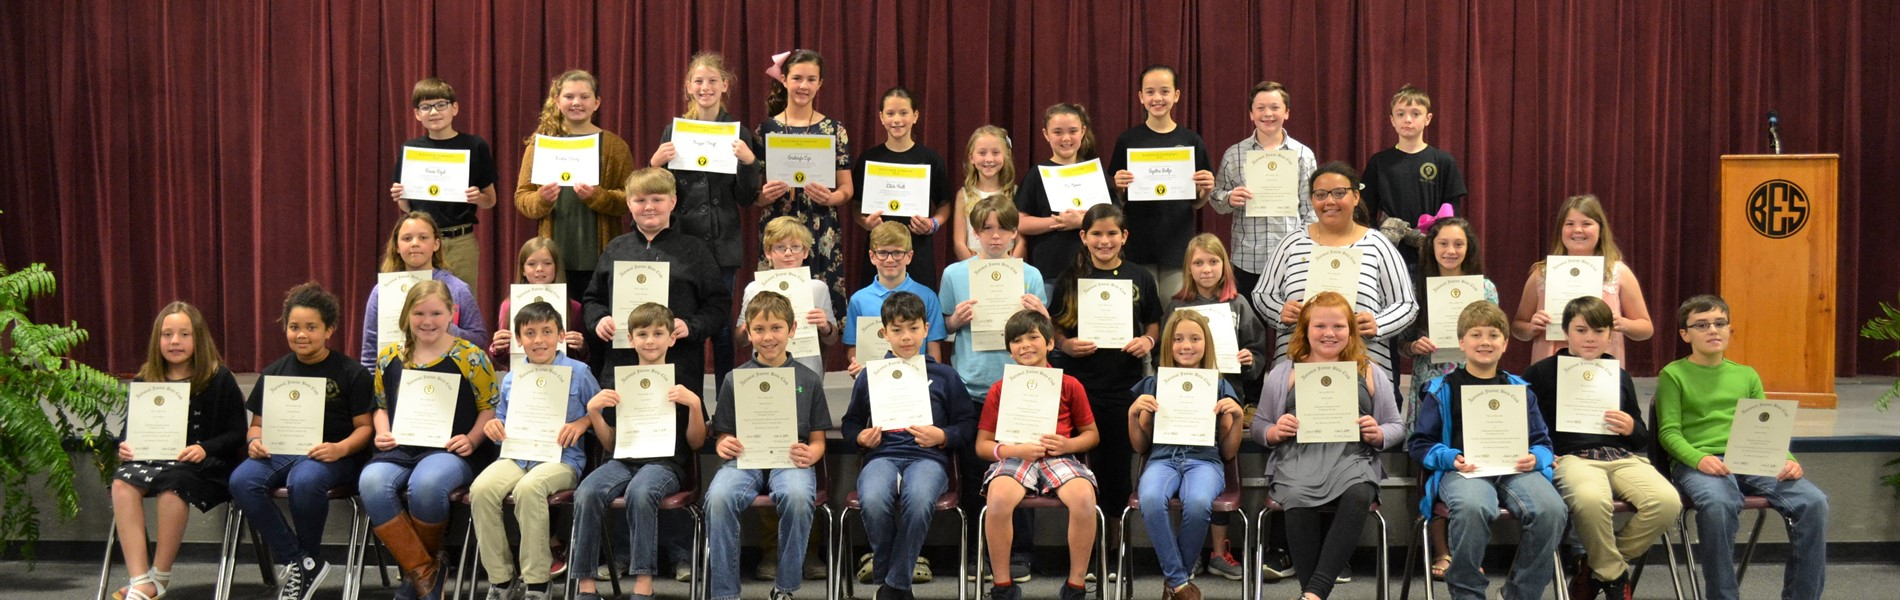 Jr. Beta Club